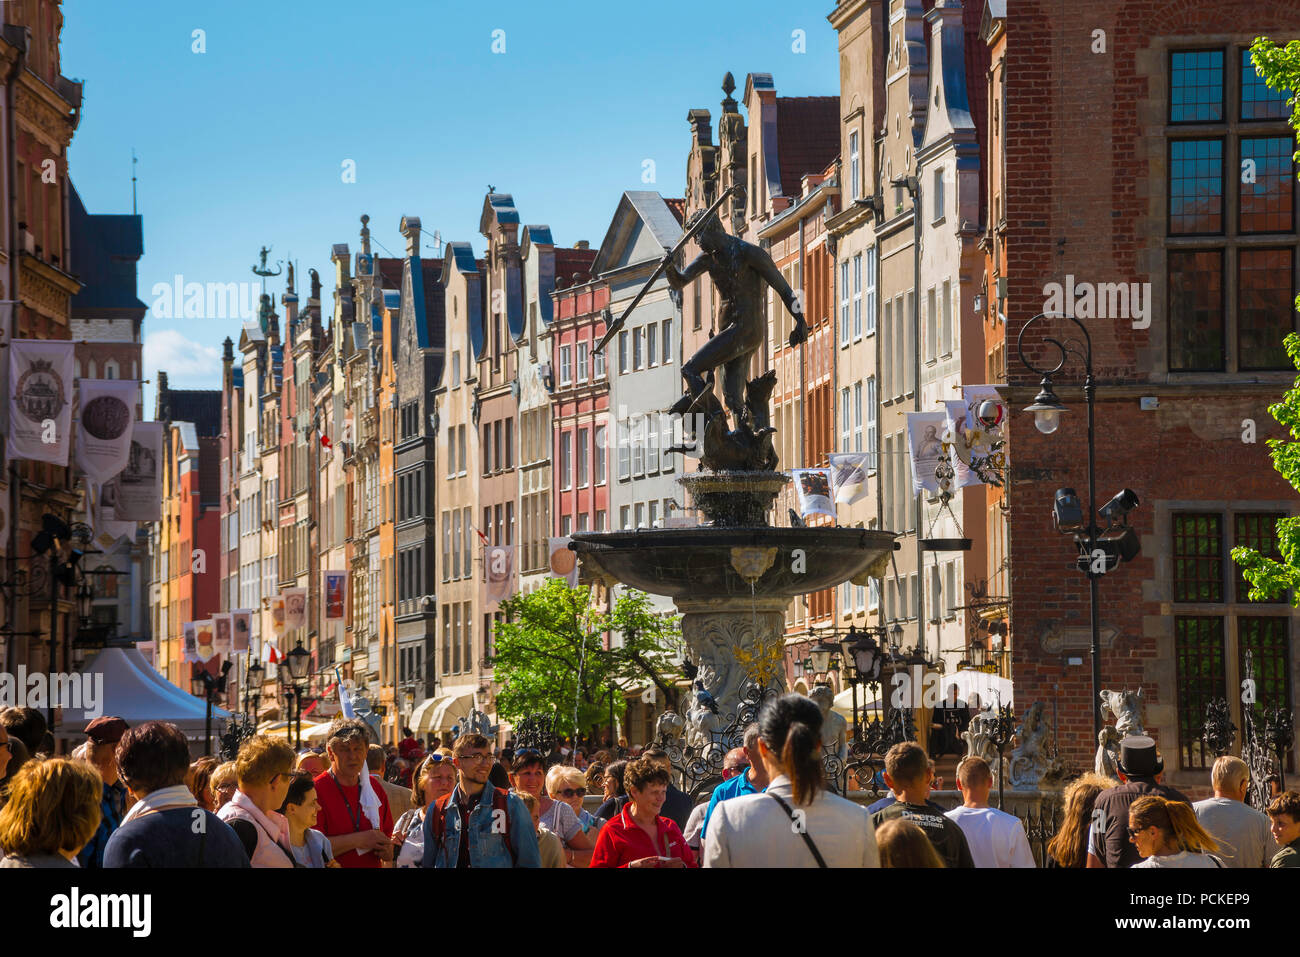 Gdansk Poland city, view along the Royal Way - the main street in the center of Gdansk on a busy summer afternoon, Pomerania, Poland. - Stock Image